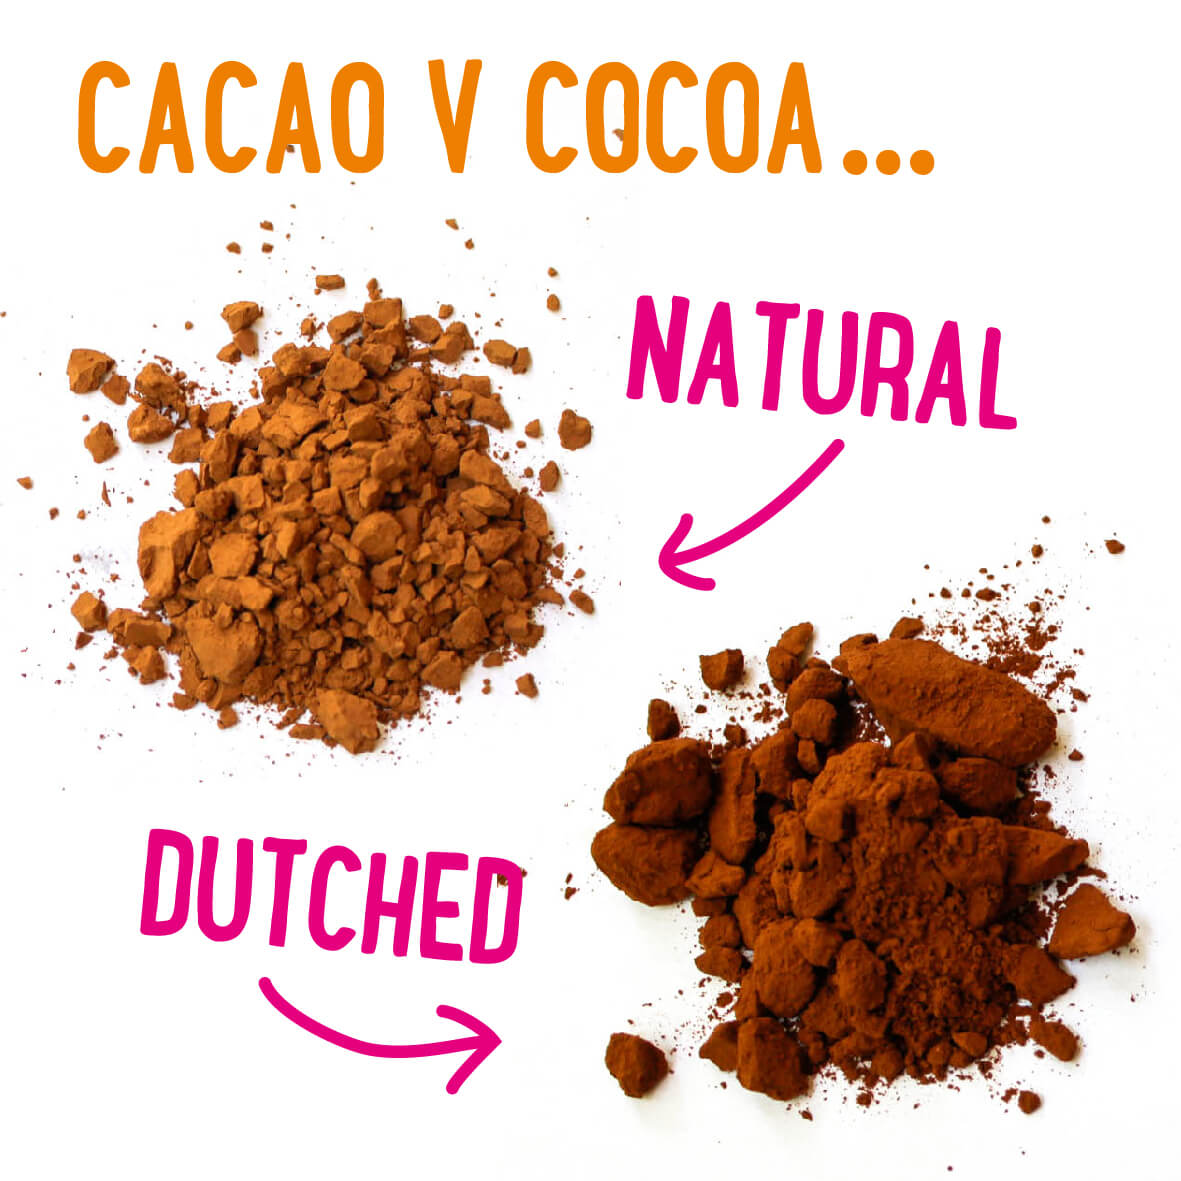 What's the difference between Cacao v's cocoa